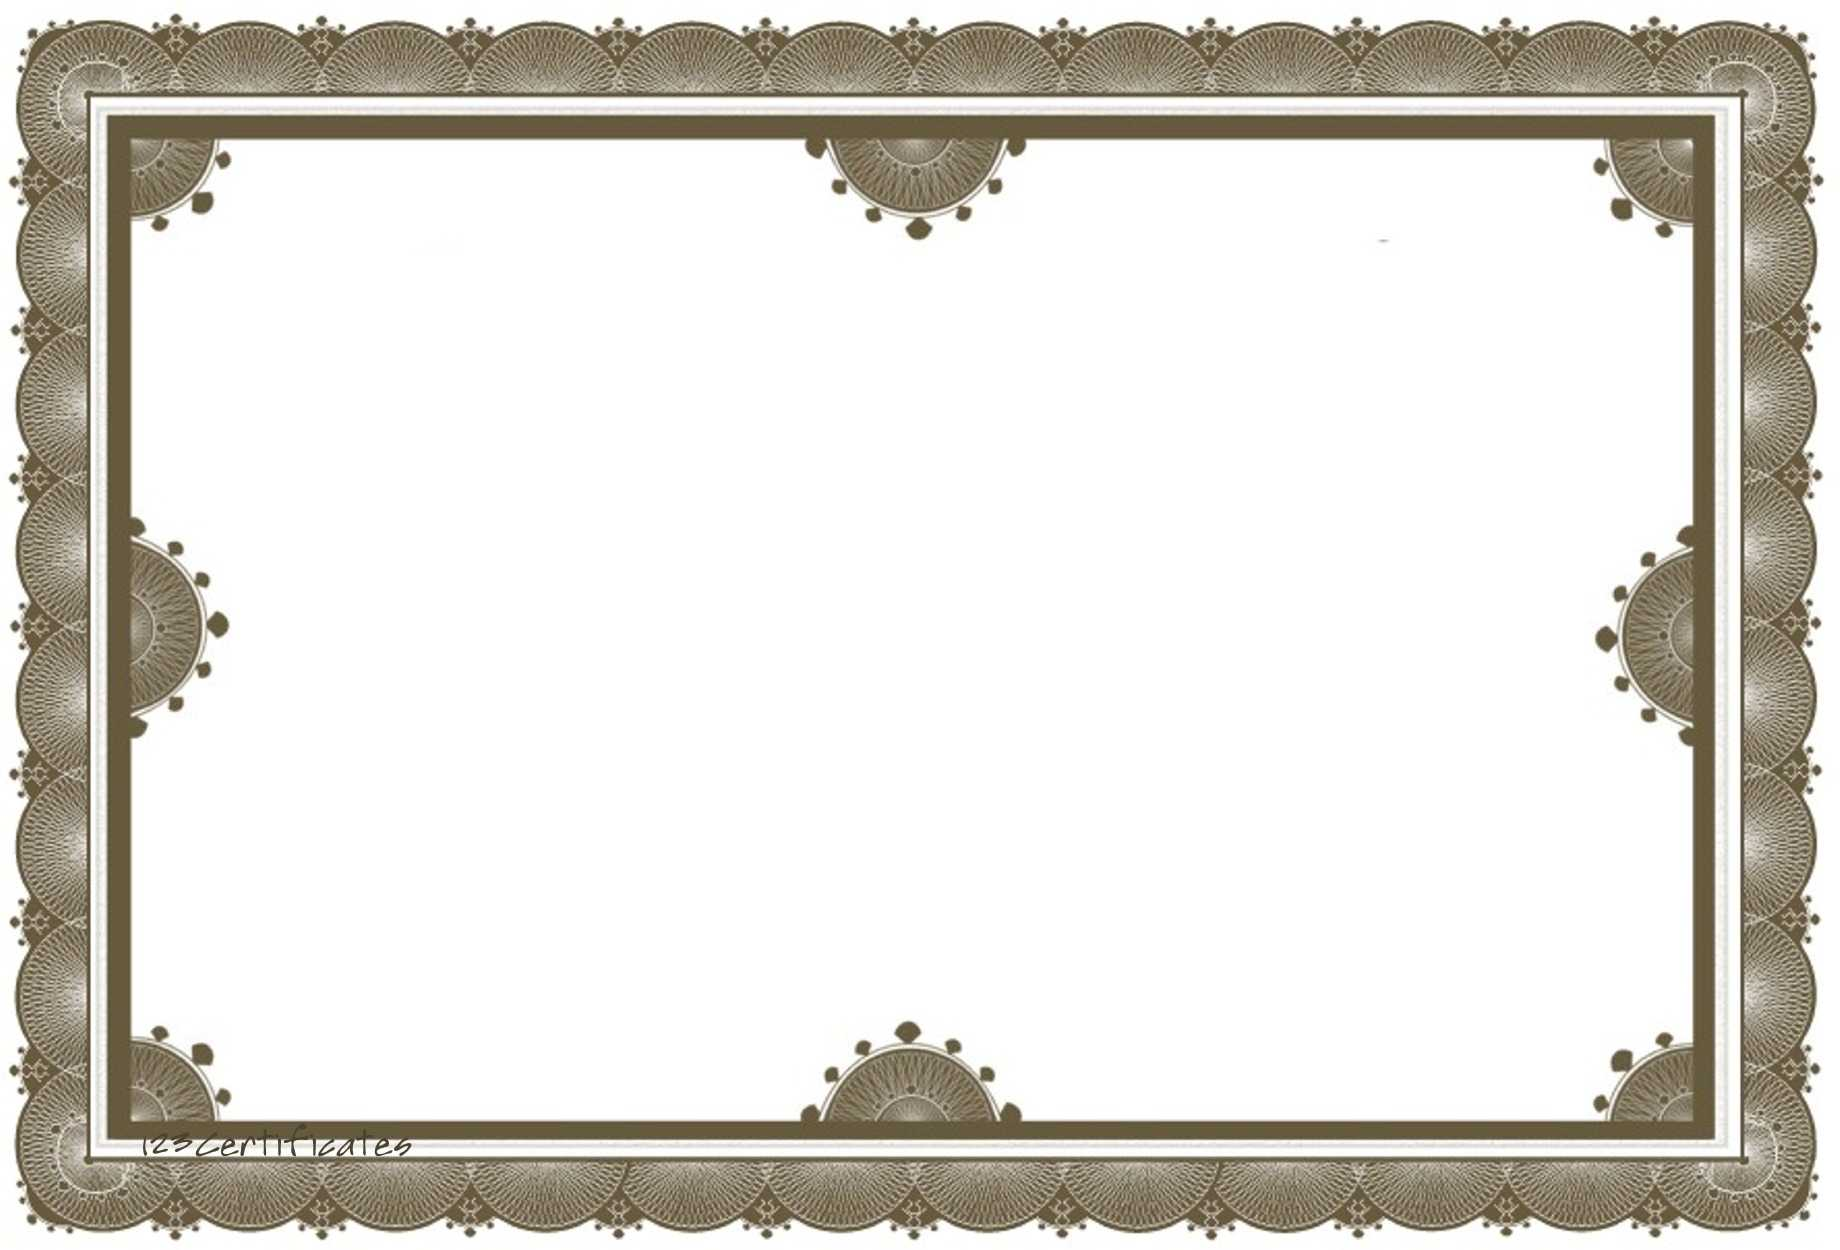 Free Certificate Borders To Download In Award Certificate Border Template